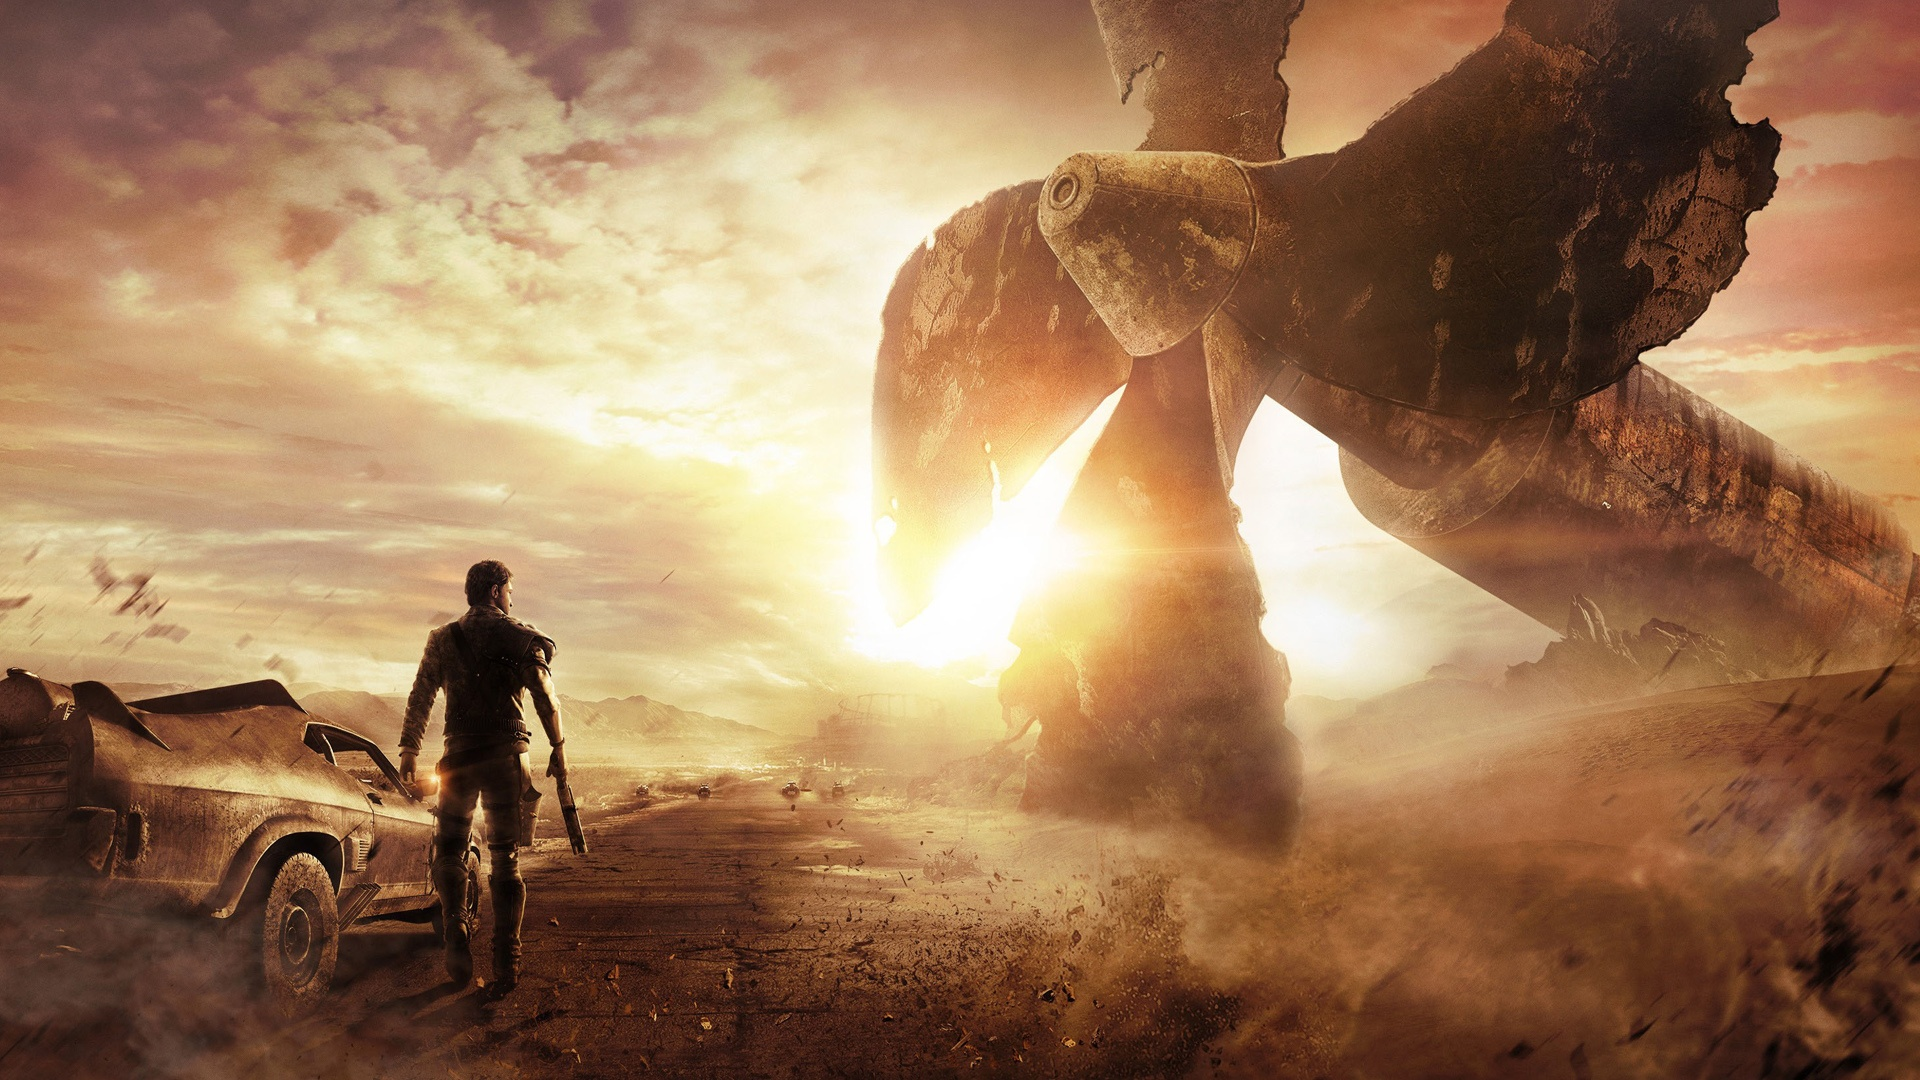 2014 mad max game wallpapers in jpg format for free download